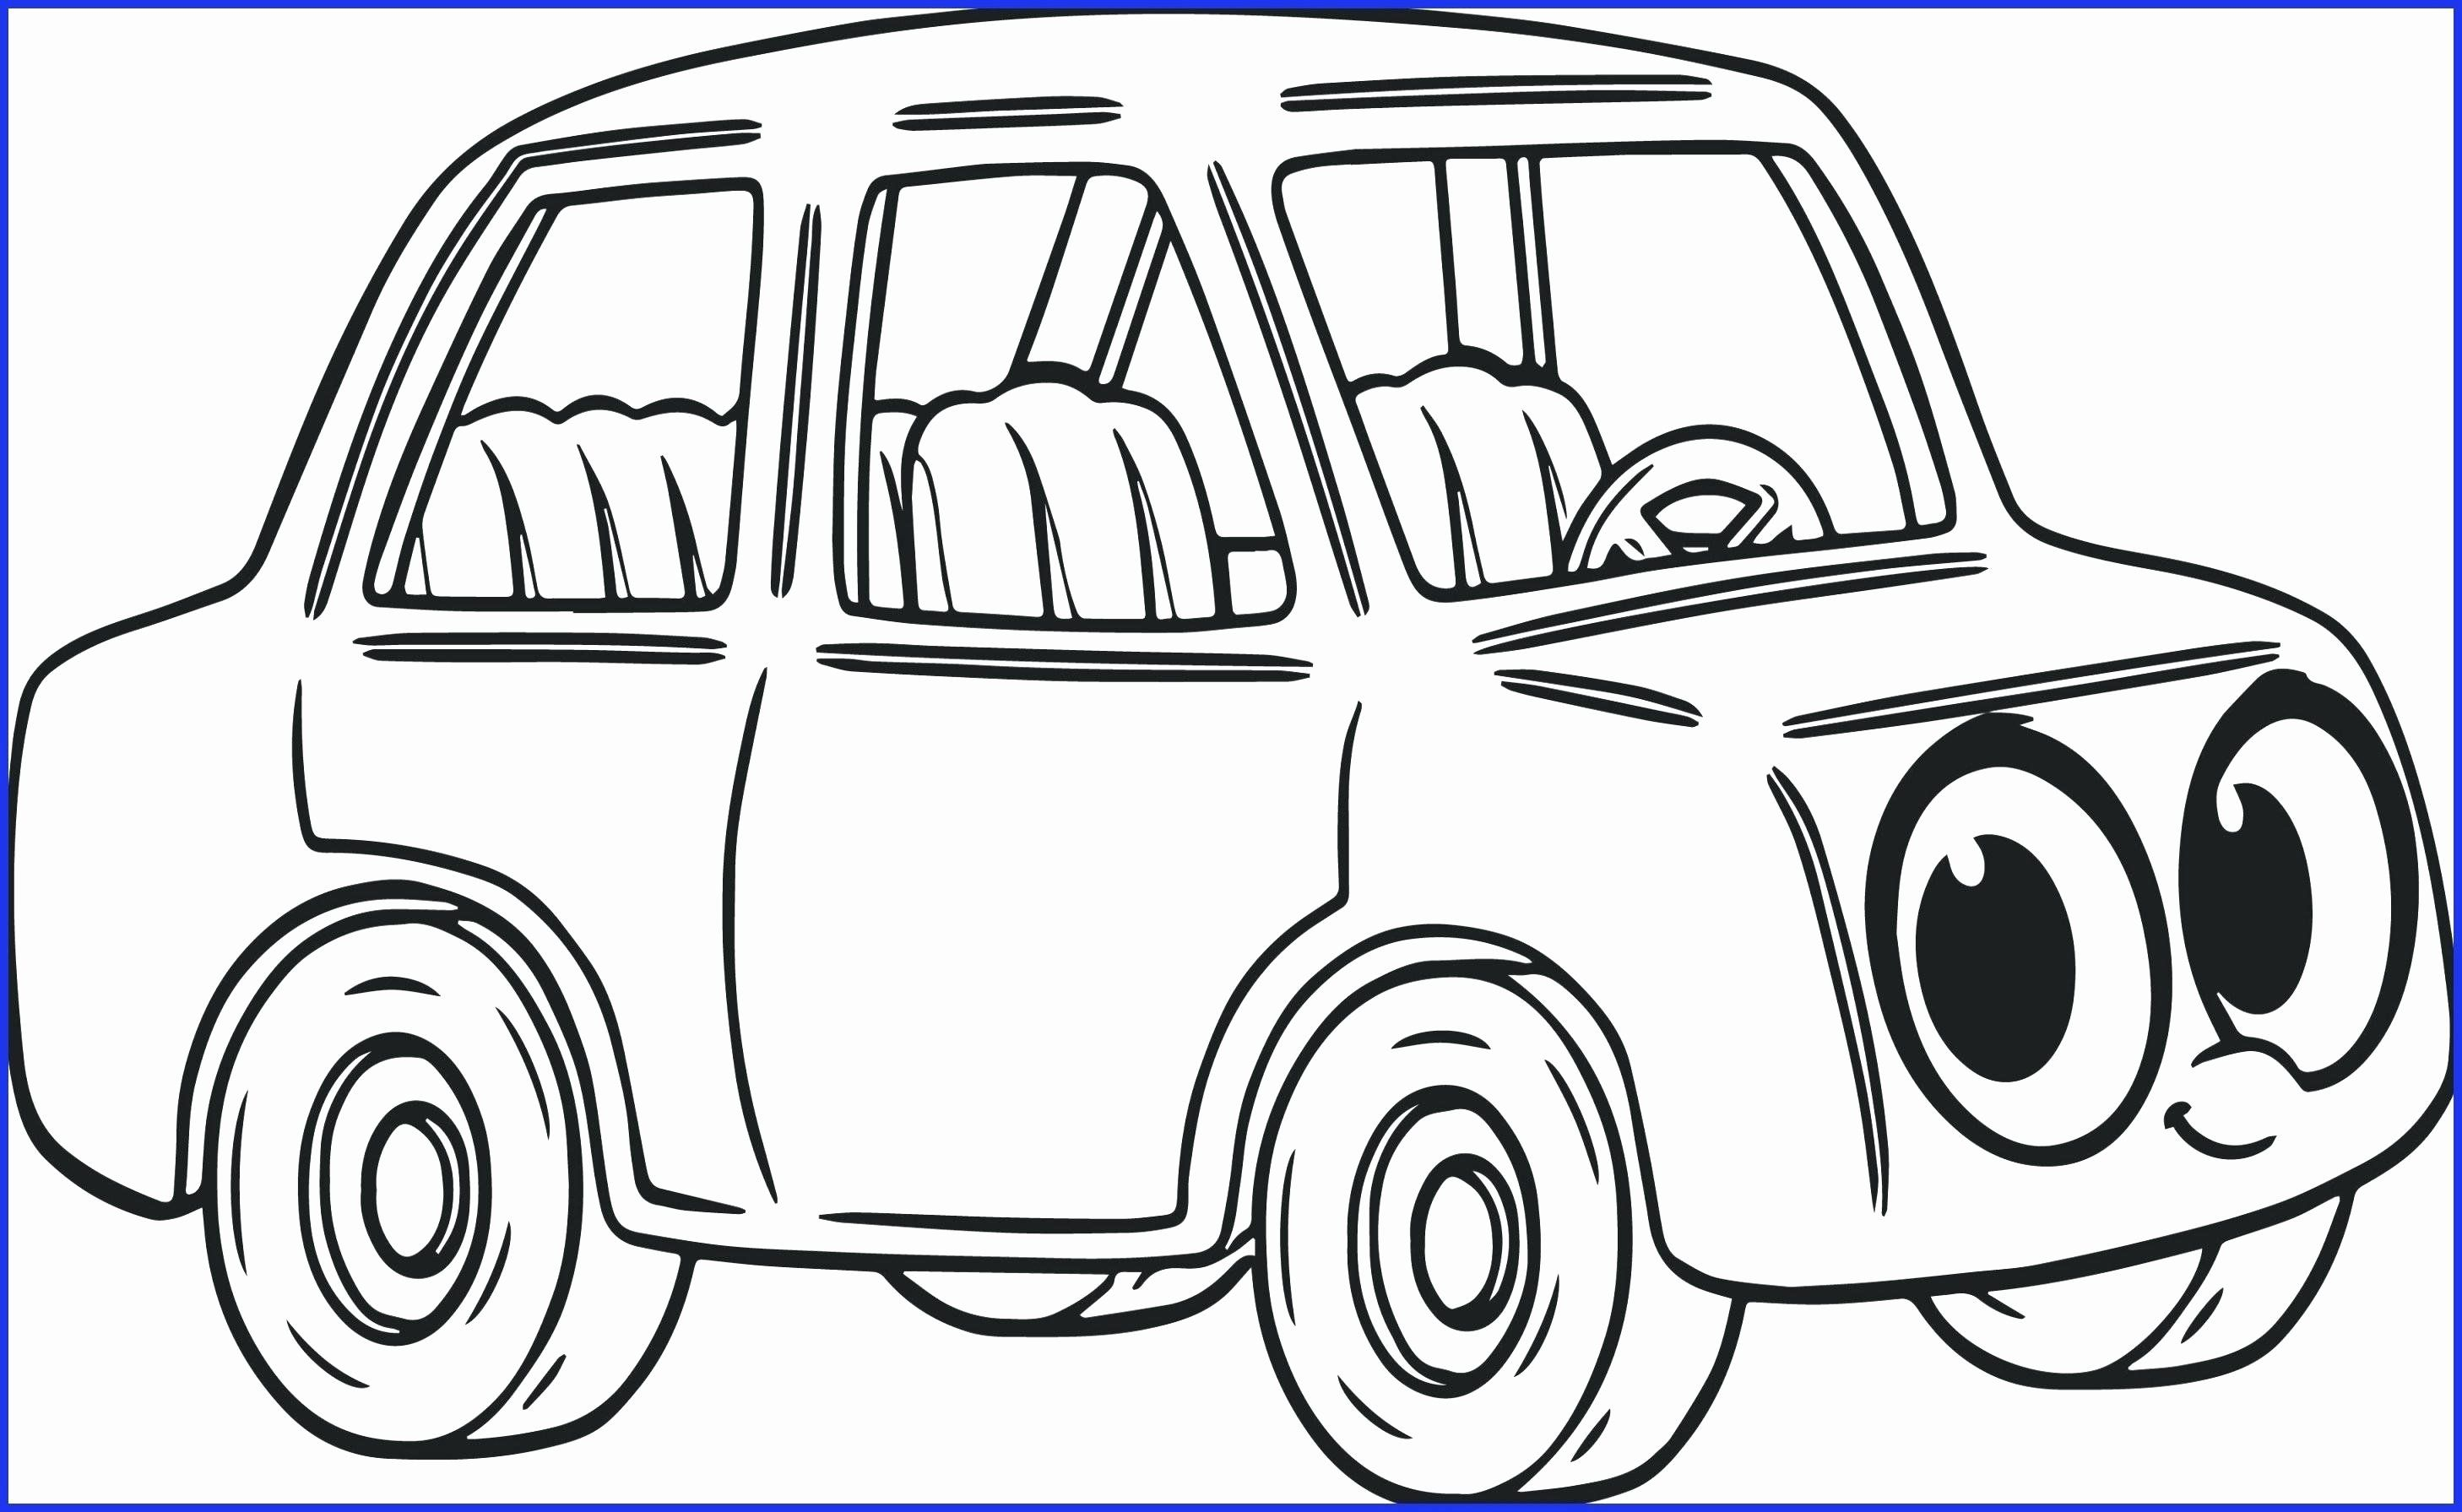 Free Motorcycle Coloring Pages Awesome Of Hot Wheels Coloring Pages Free Sabadaphnecottage Cars Coloring Pages Cartoon Coloring Pages Cartoon Car Drawing